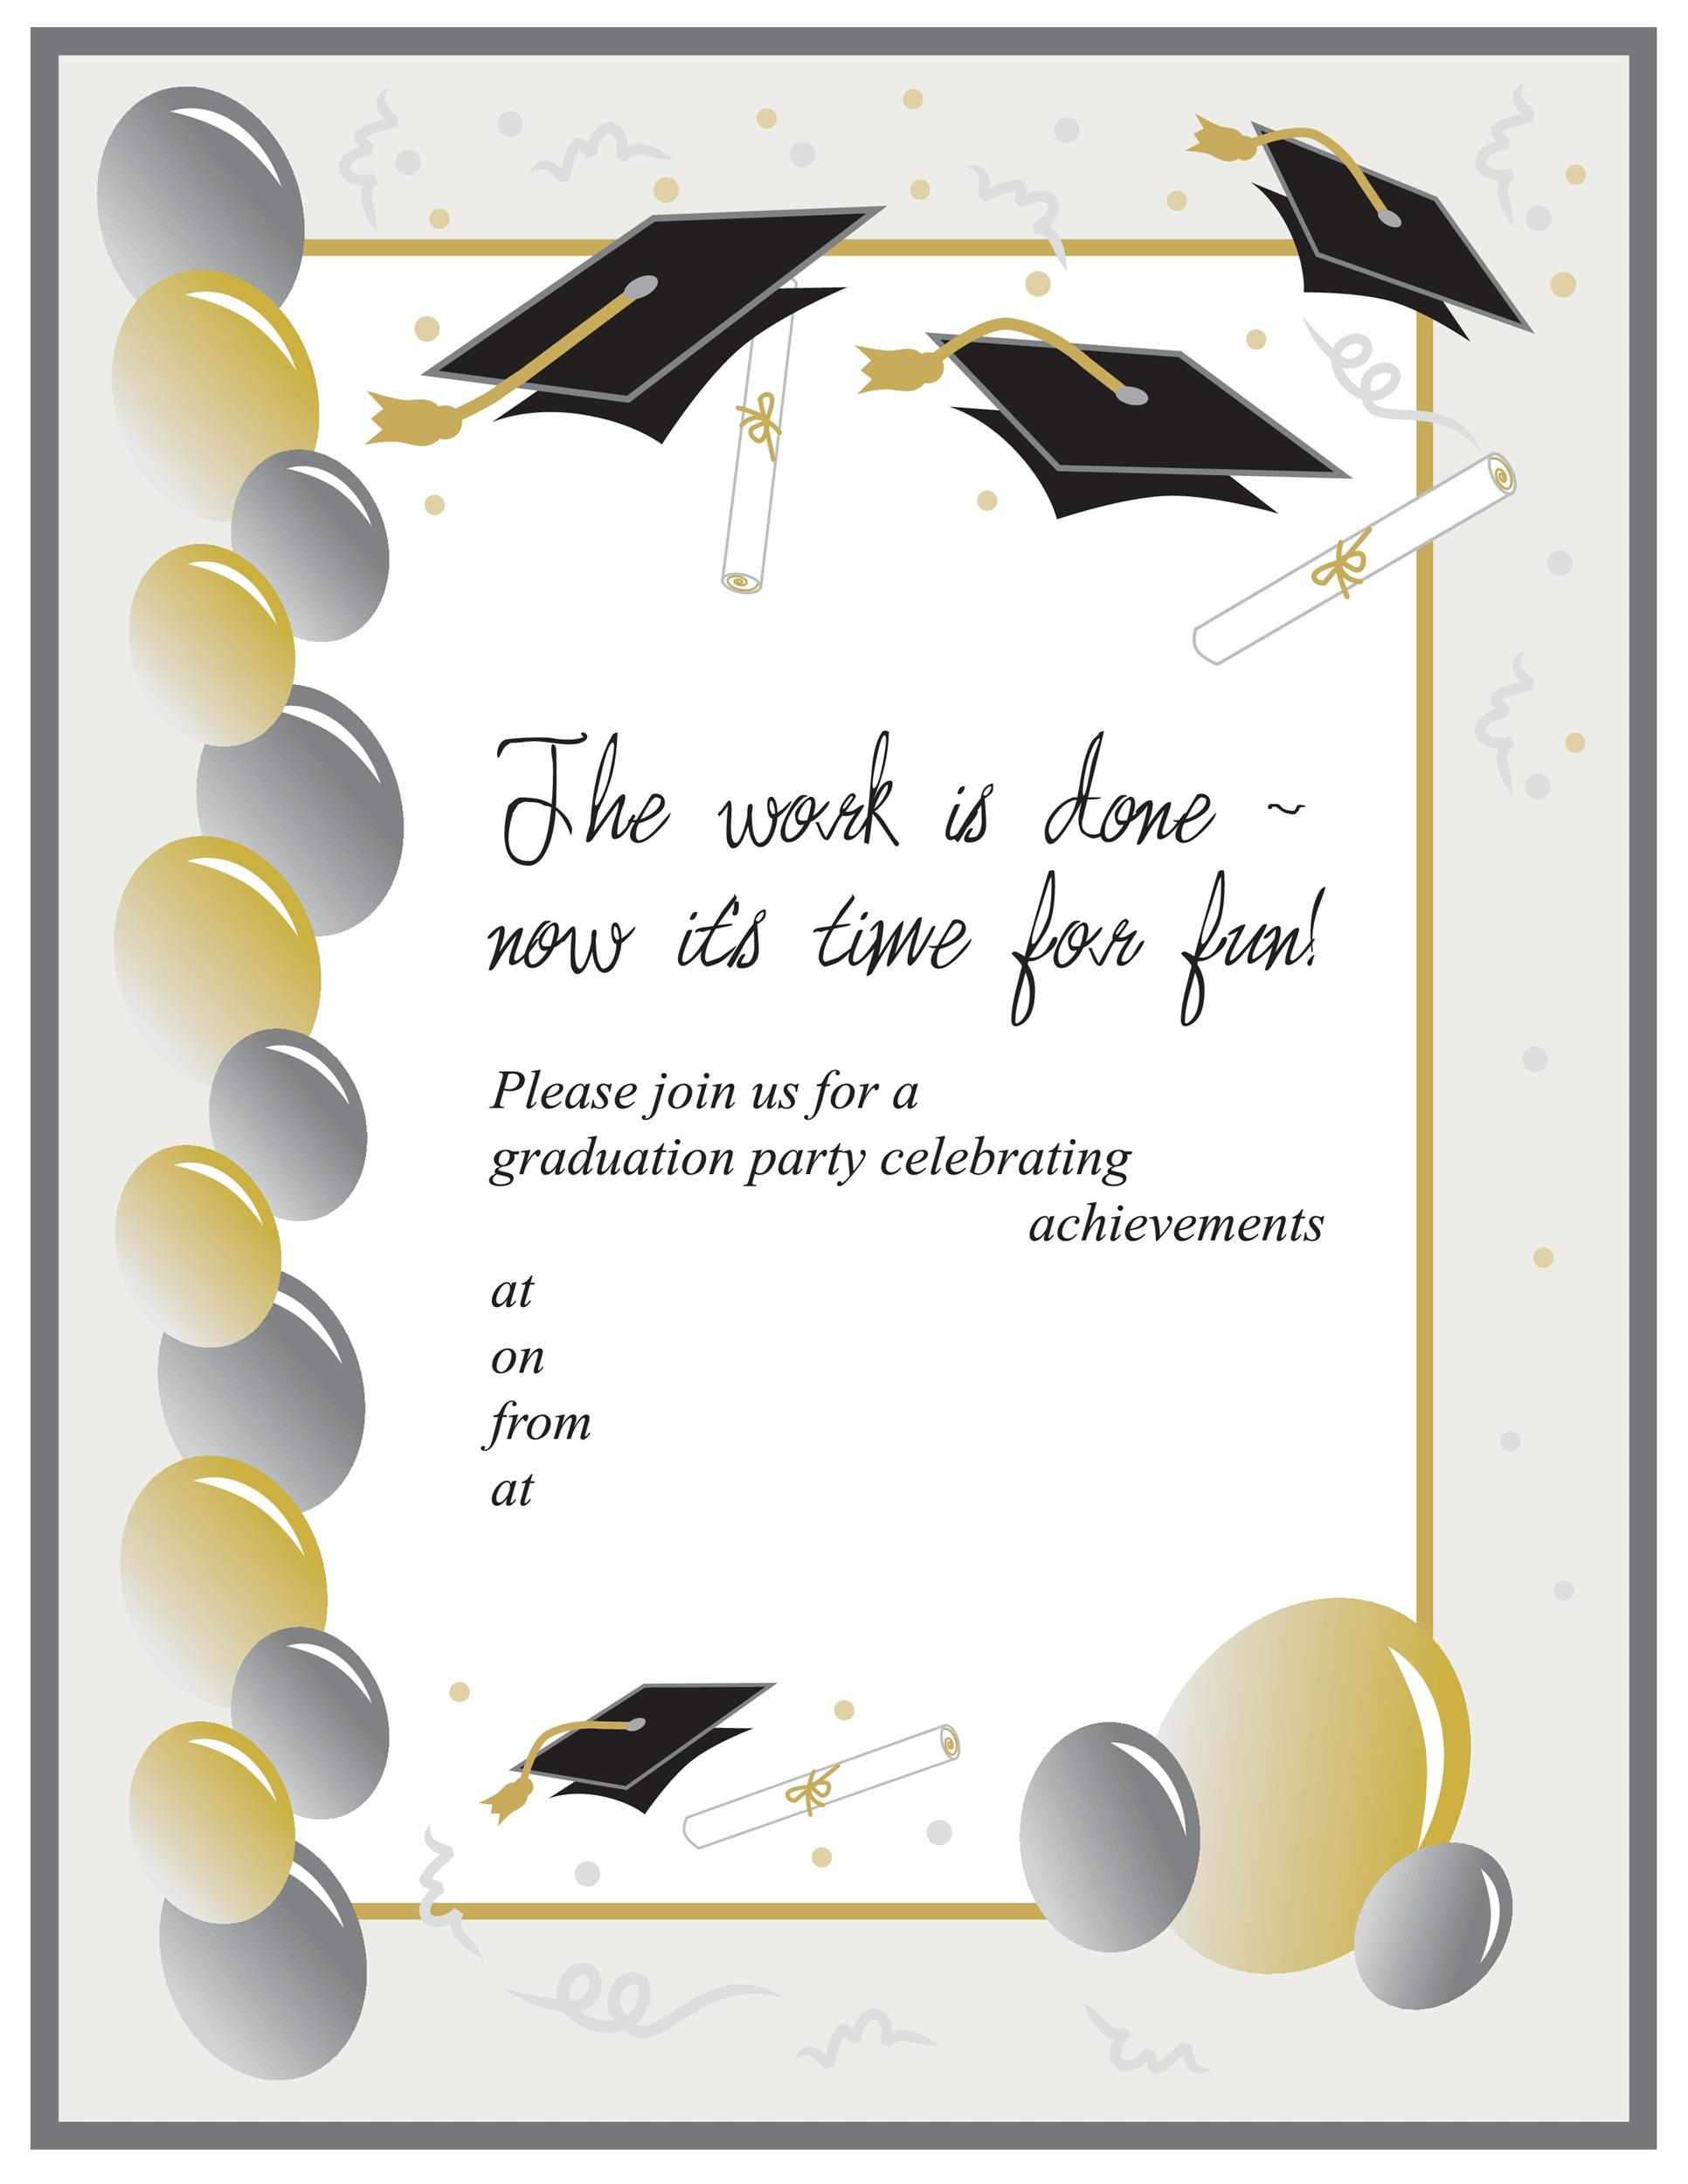 40 free graduation invitation templates template lab free graduation invitation templates 02 printable graduation invitation templates 02 filmwisefo